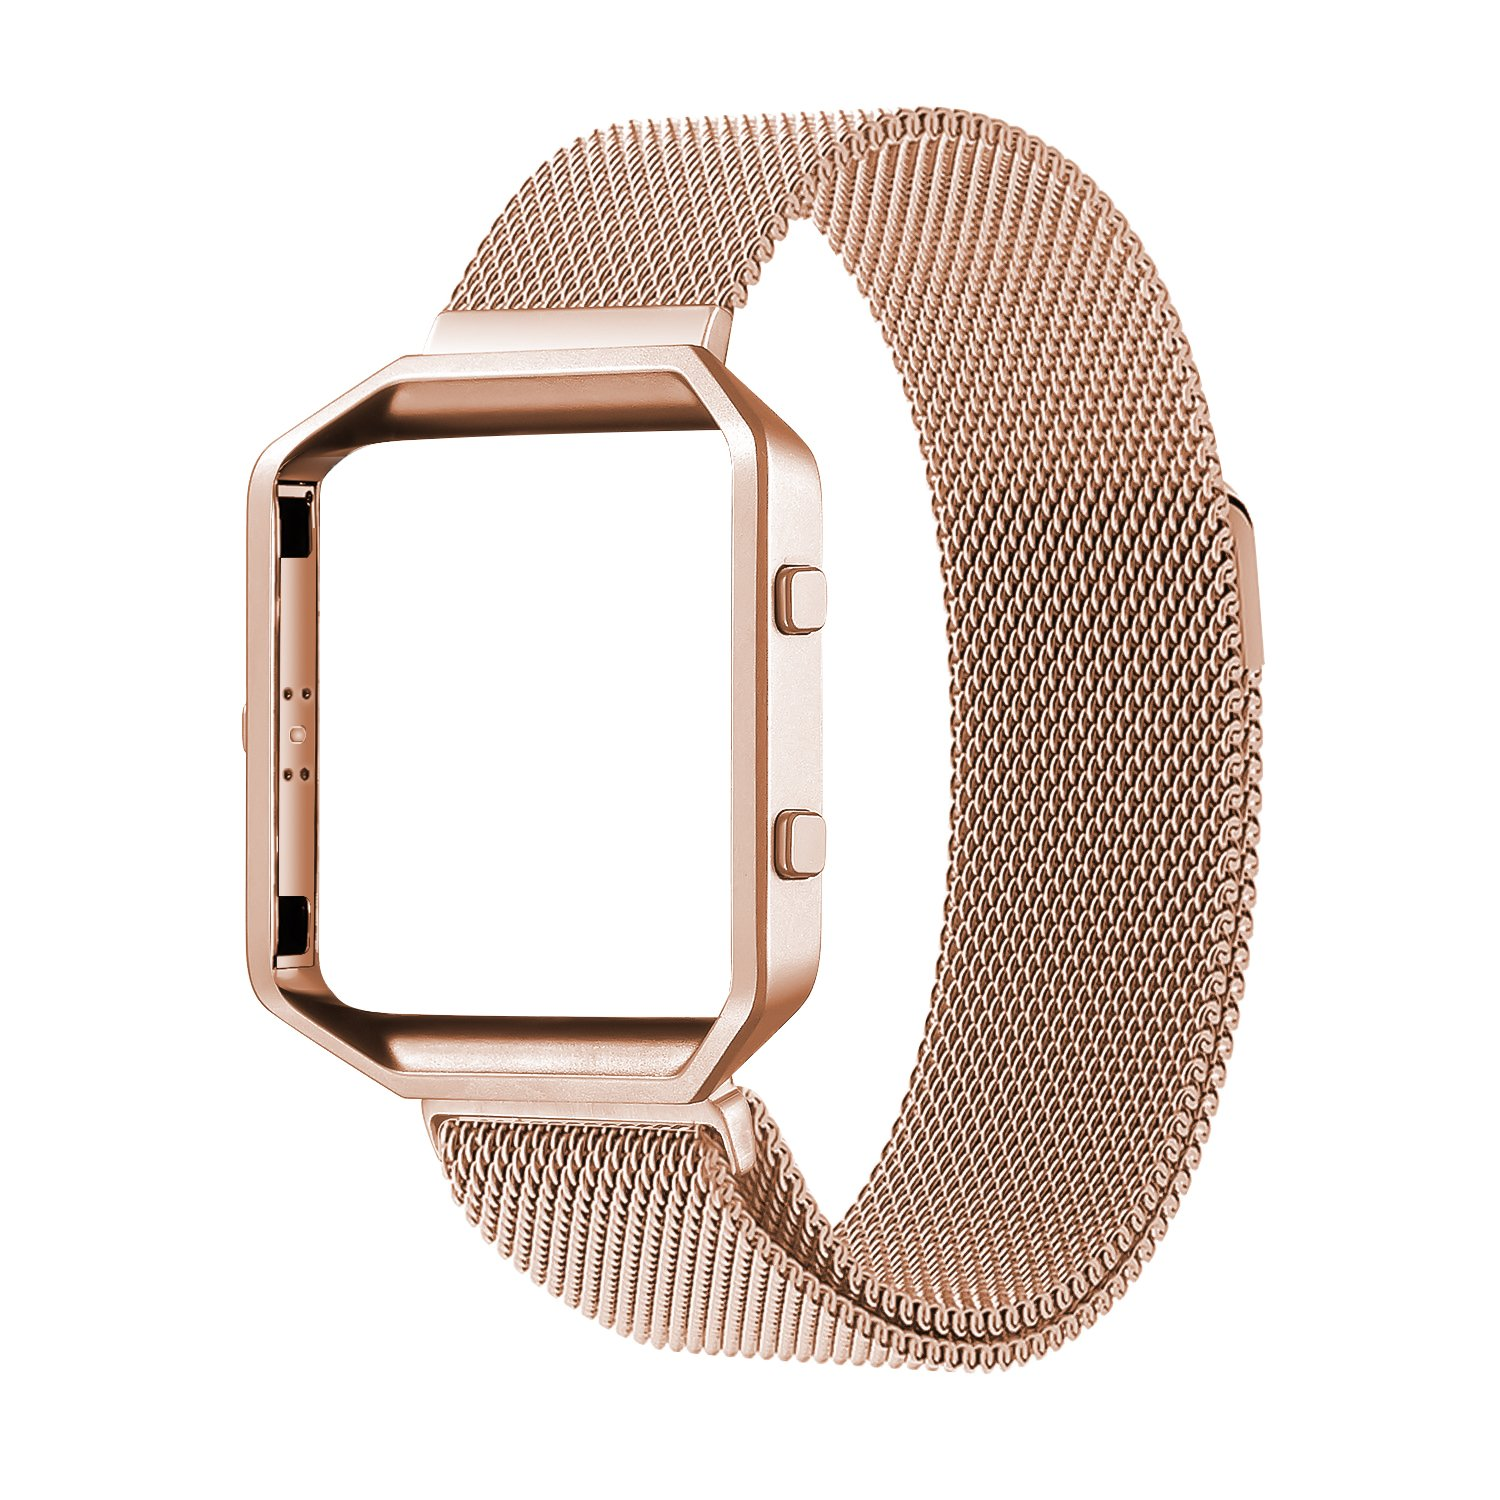 Oitom Metal Bands Strap Compatiable Fitbit Blaze,Small (5.5-6.7 in), Frame Housing+Milanese Loop Stainless Steel Accessory Band for Fitbit Blaze Smart Watch Fitness Tracker Women Rose Gold